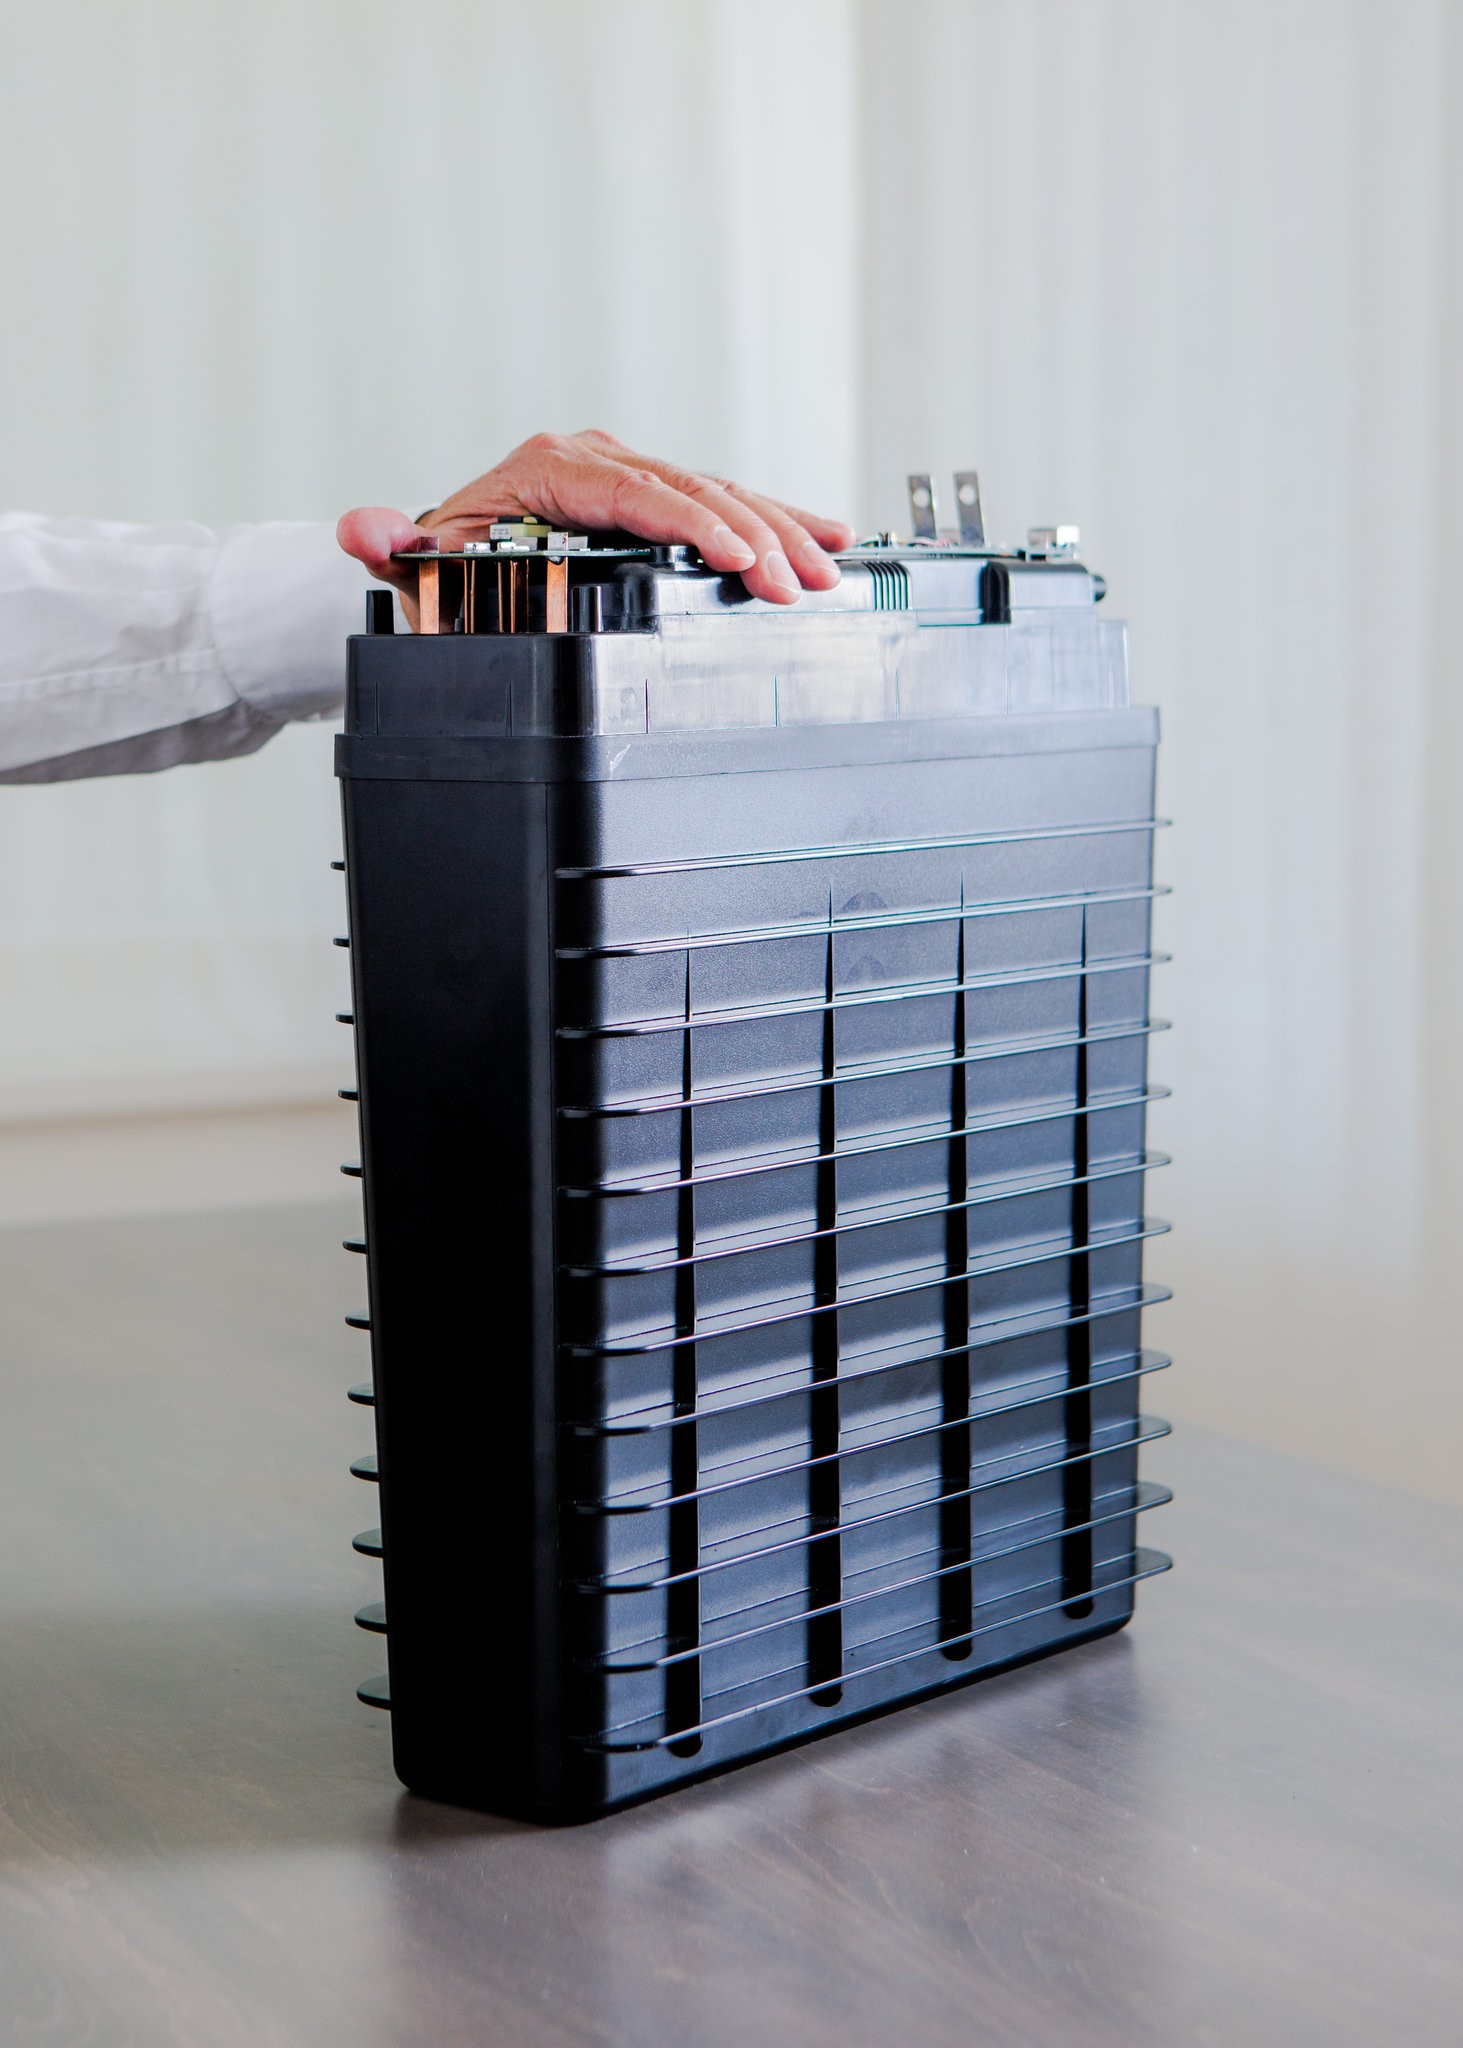 Cheaper Battery Is Unveiled as a Step to a Carbon-Free Grid